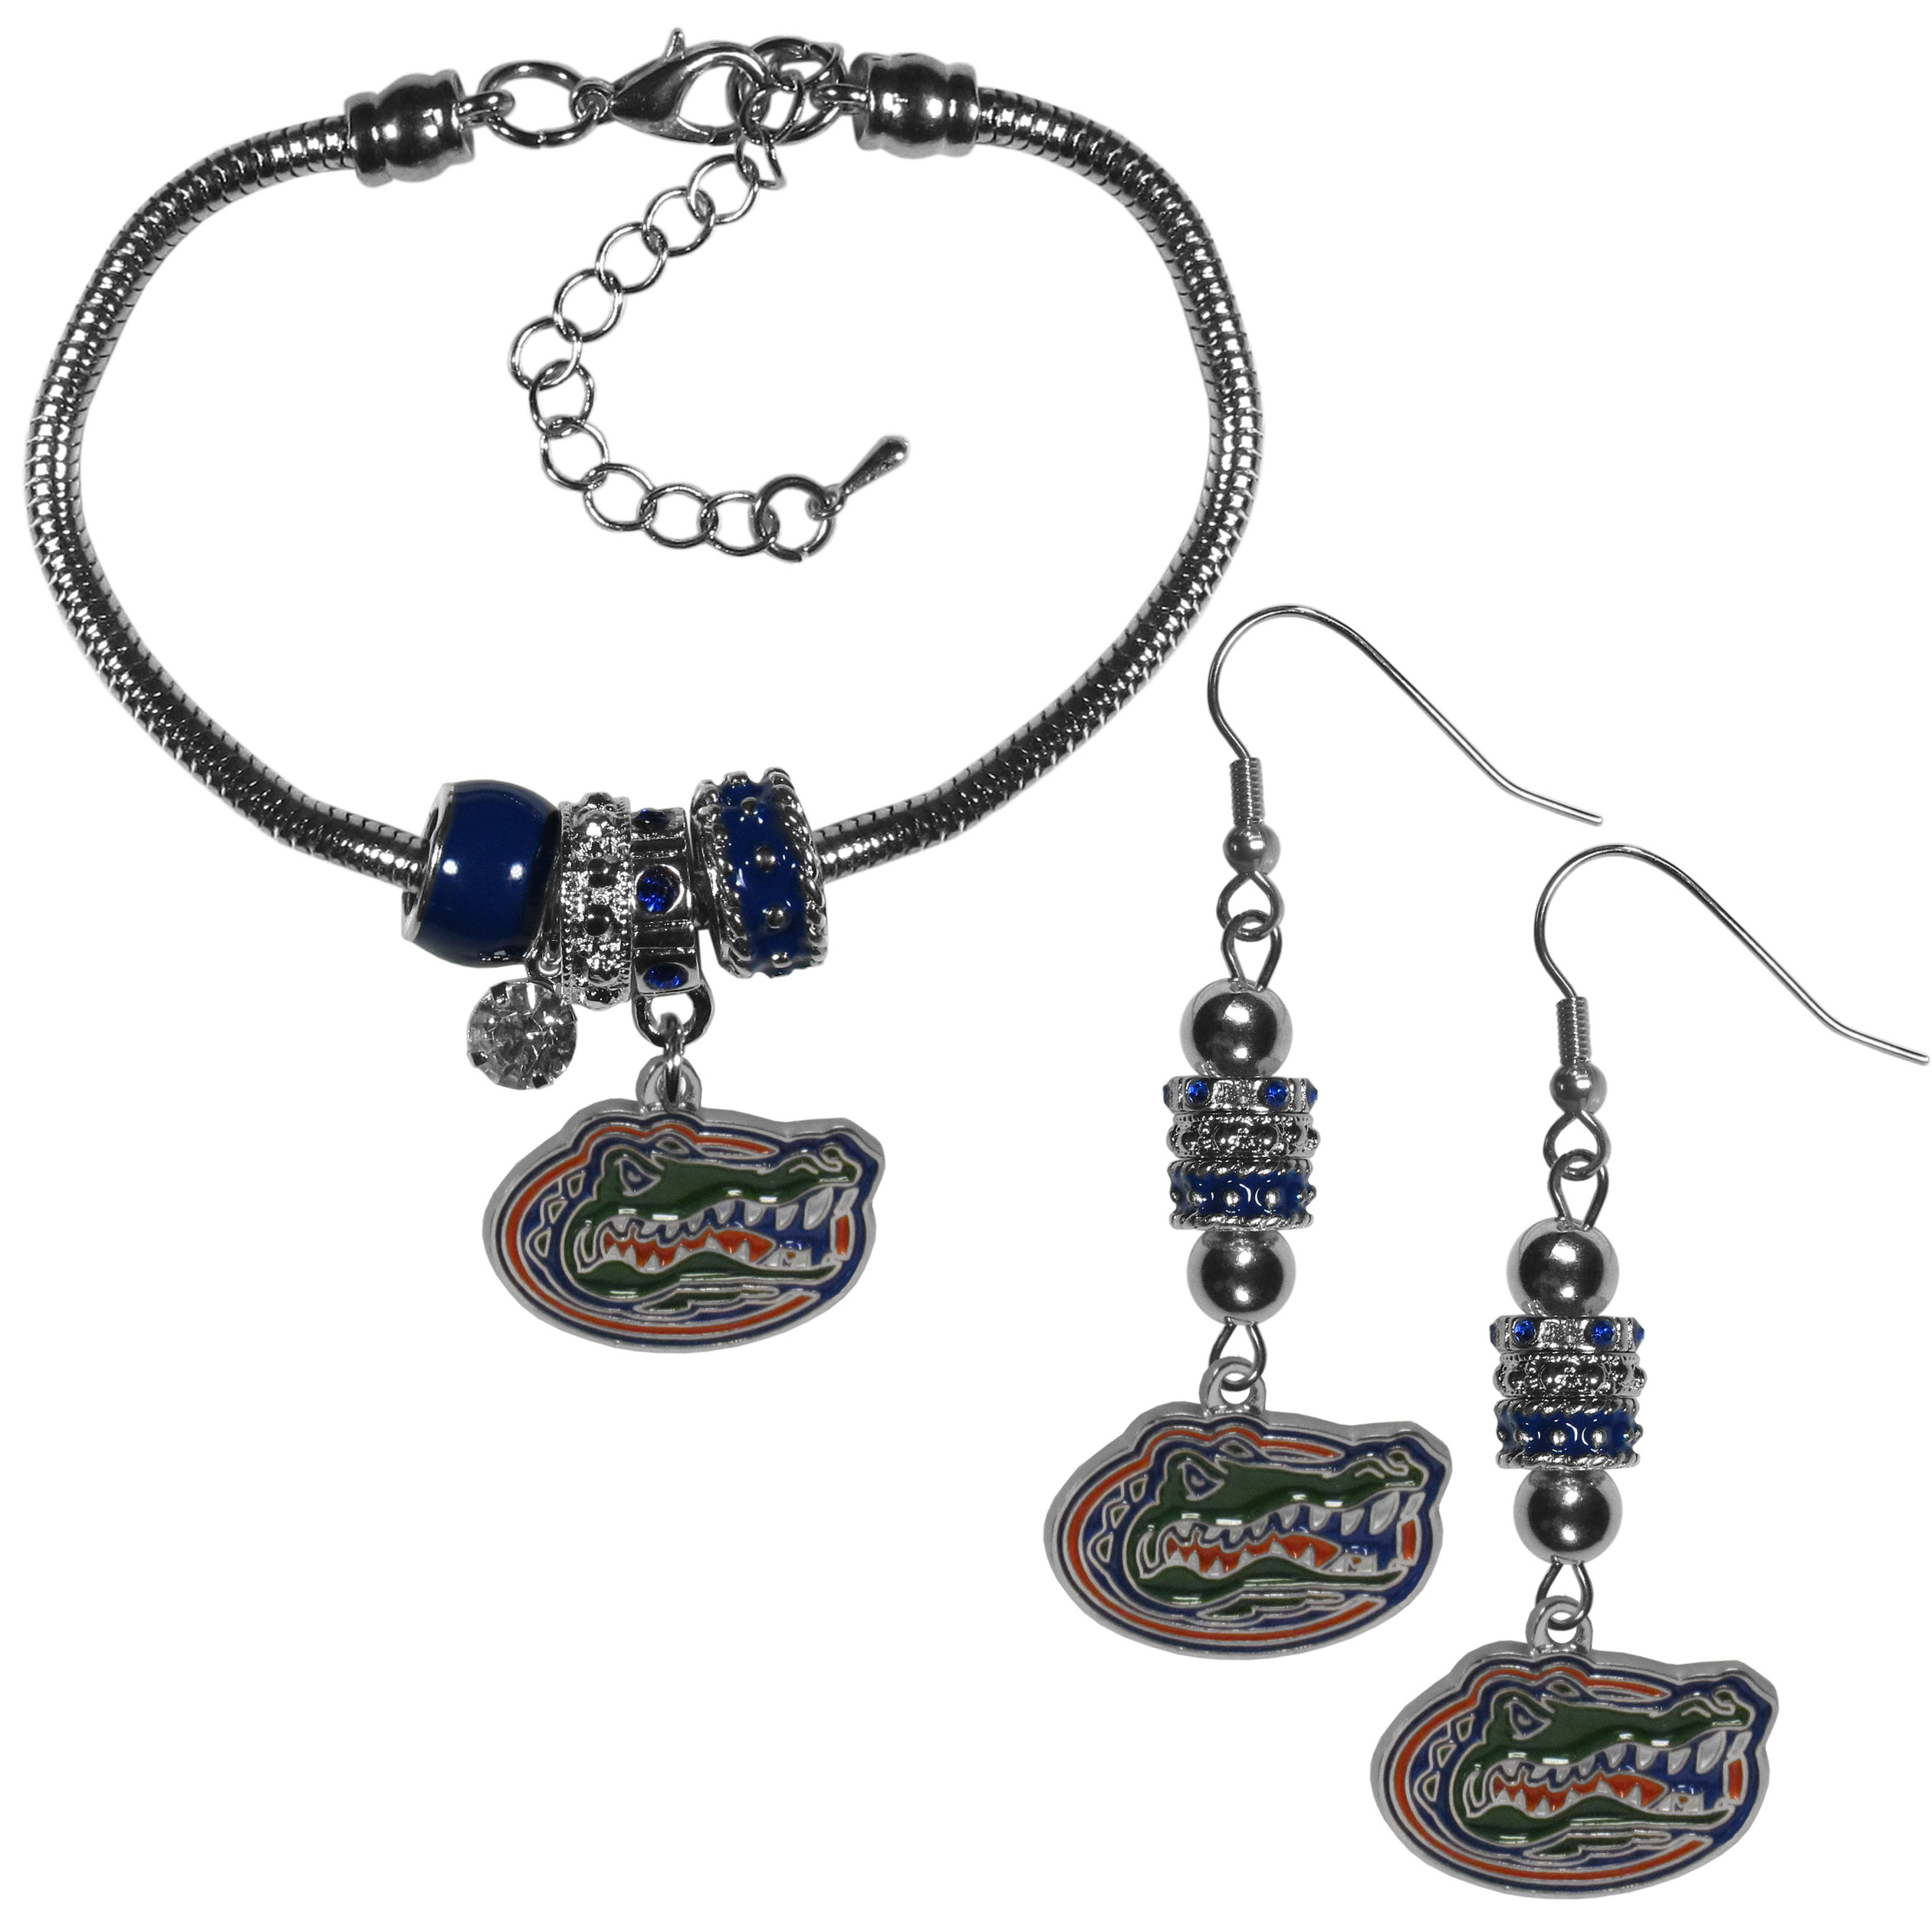 Florida Gators Euro Bead Earrings and Bracelet Set - We combine the popular Euro bead style with your love of the Florida Gators with this beautiful jewelry set that includes earrings and a matching bracelet. The stylish earrings feature hypoallergenic, nickel free fishhook posts and 3 team colored Euro beads and a metal team charm. The matching snake chain bracelet is 7.5 inches long with a 2 inch extender and 4 Euro beads with a rhinestone charm and team charm.